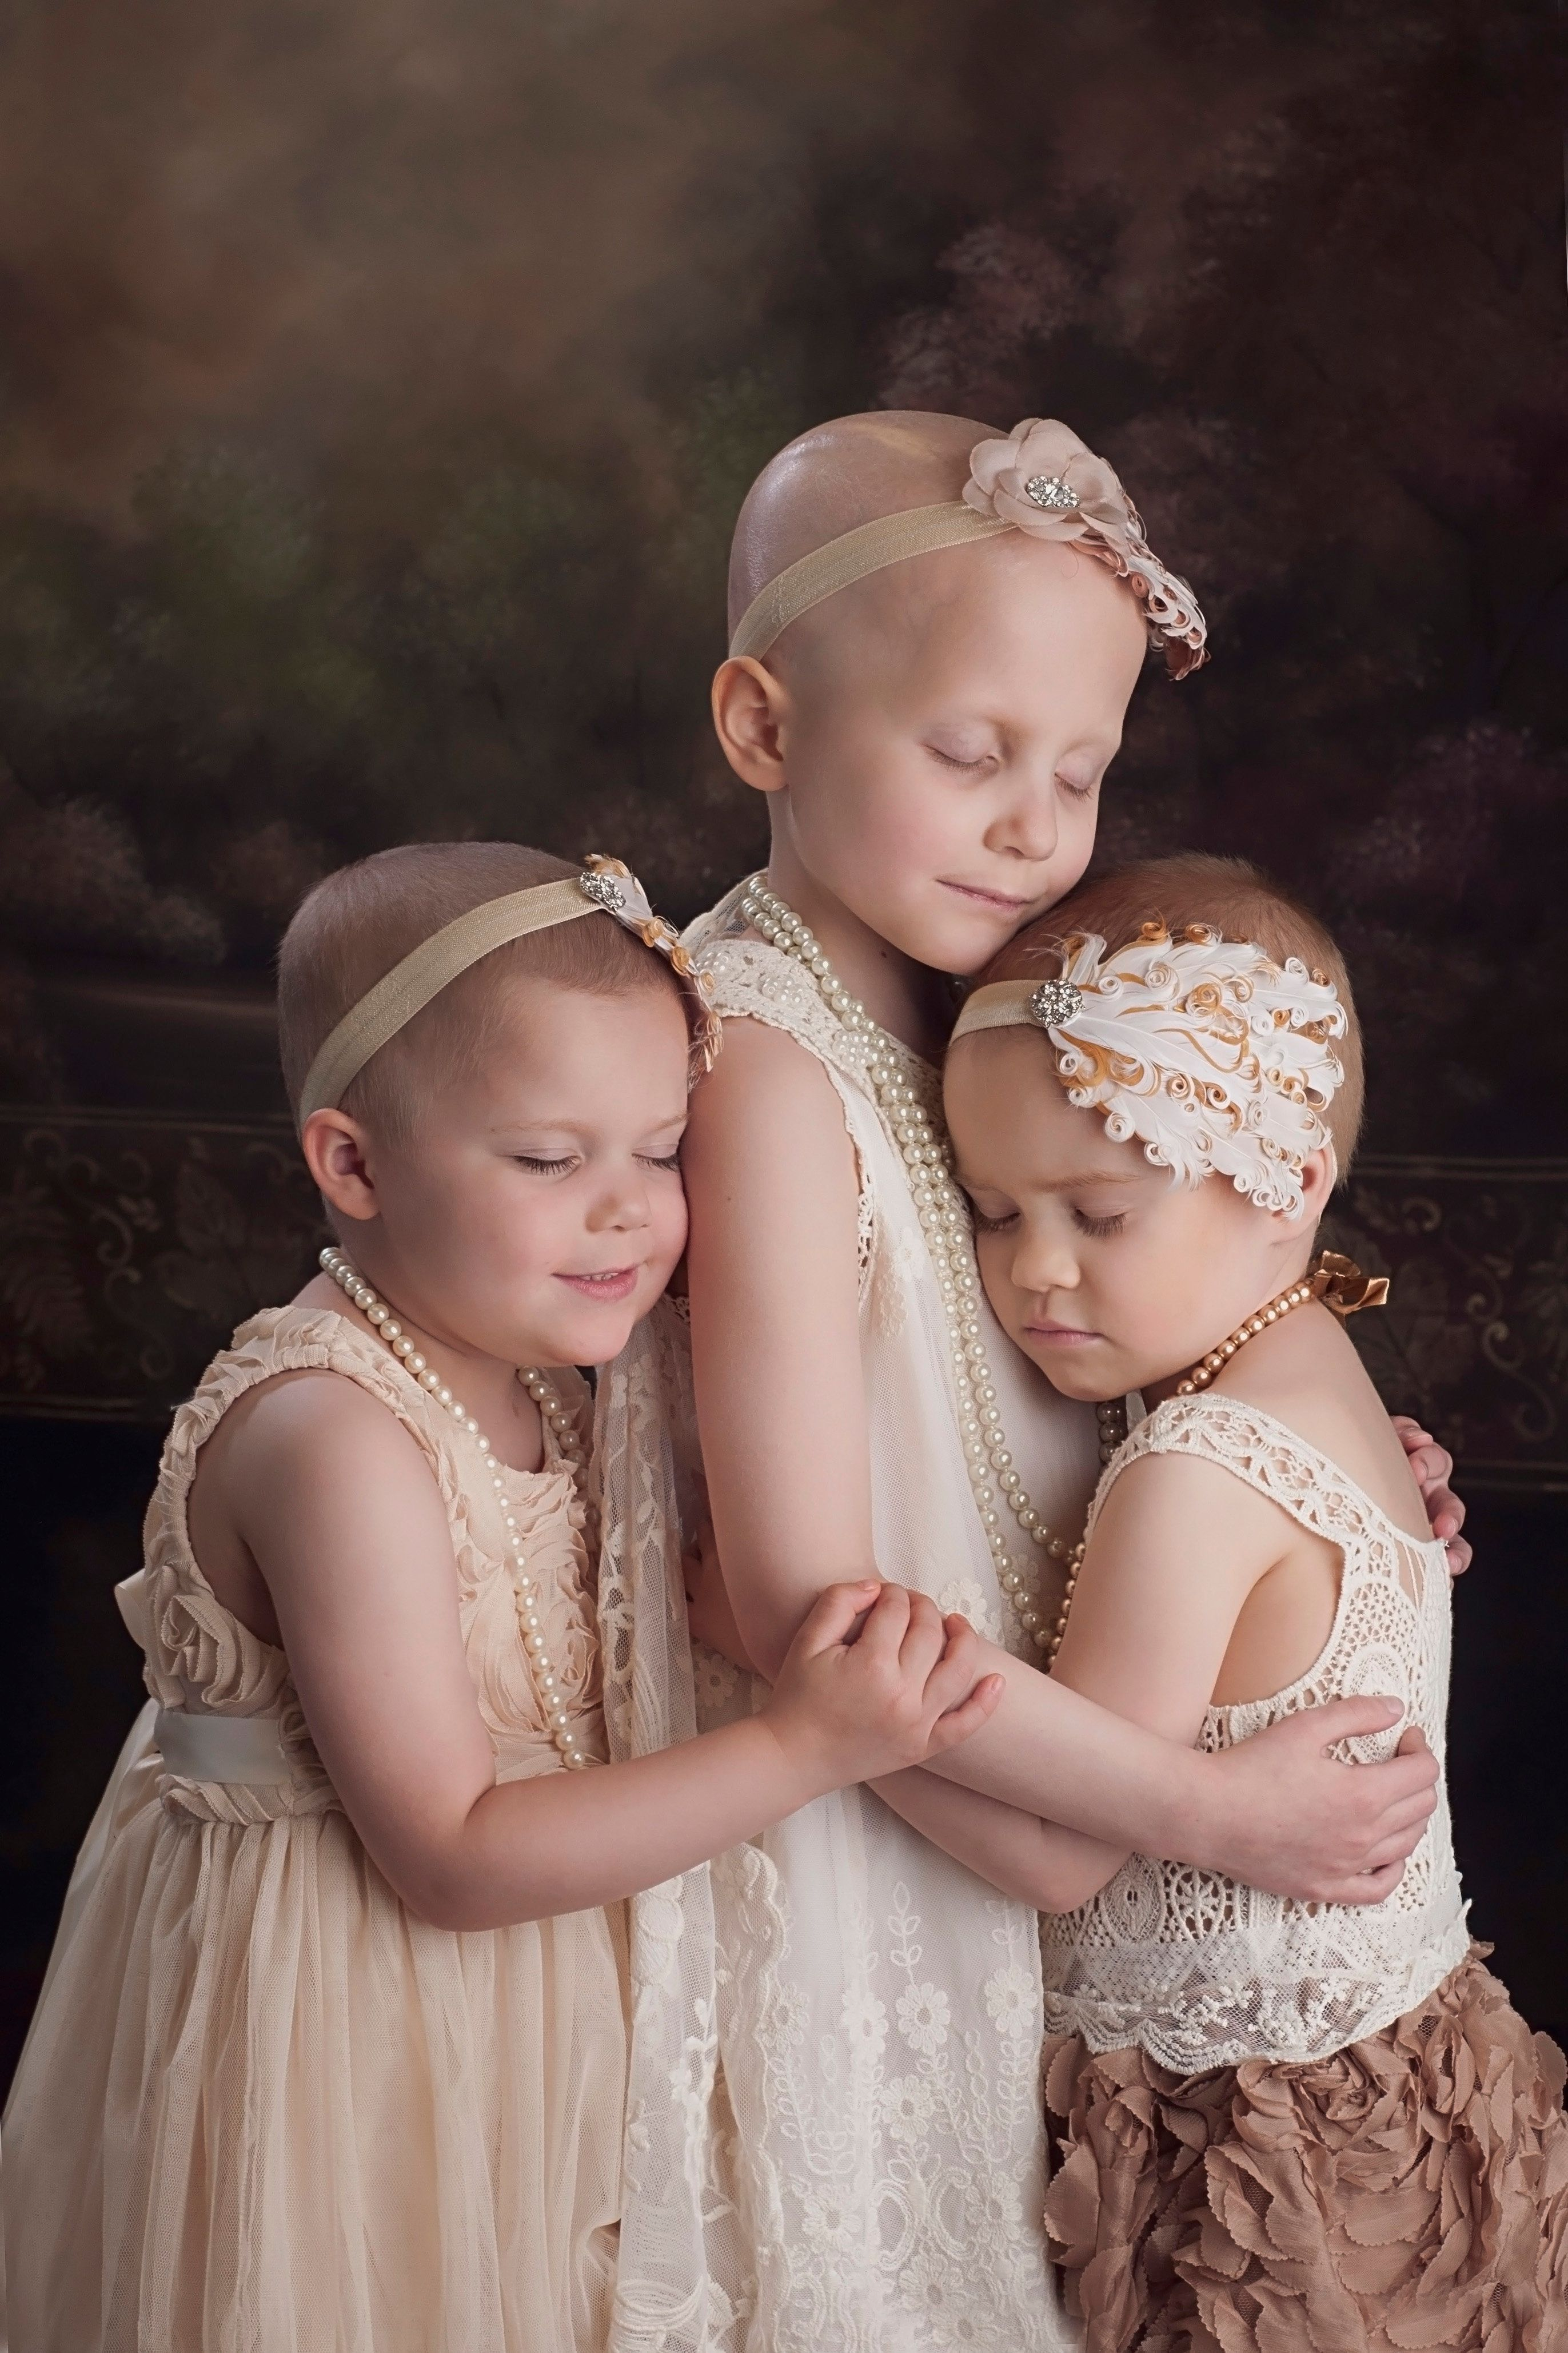 Scantling took this viral photo of the three girls in 2014.